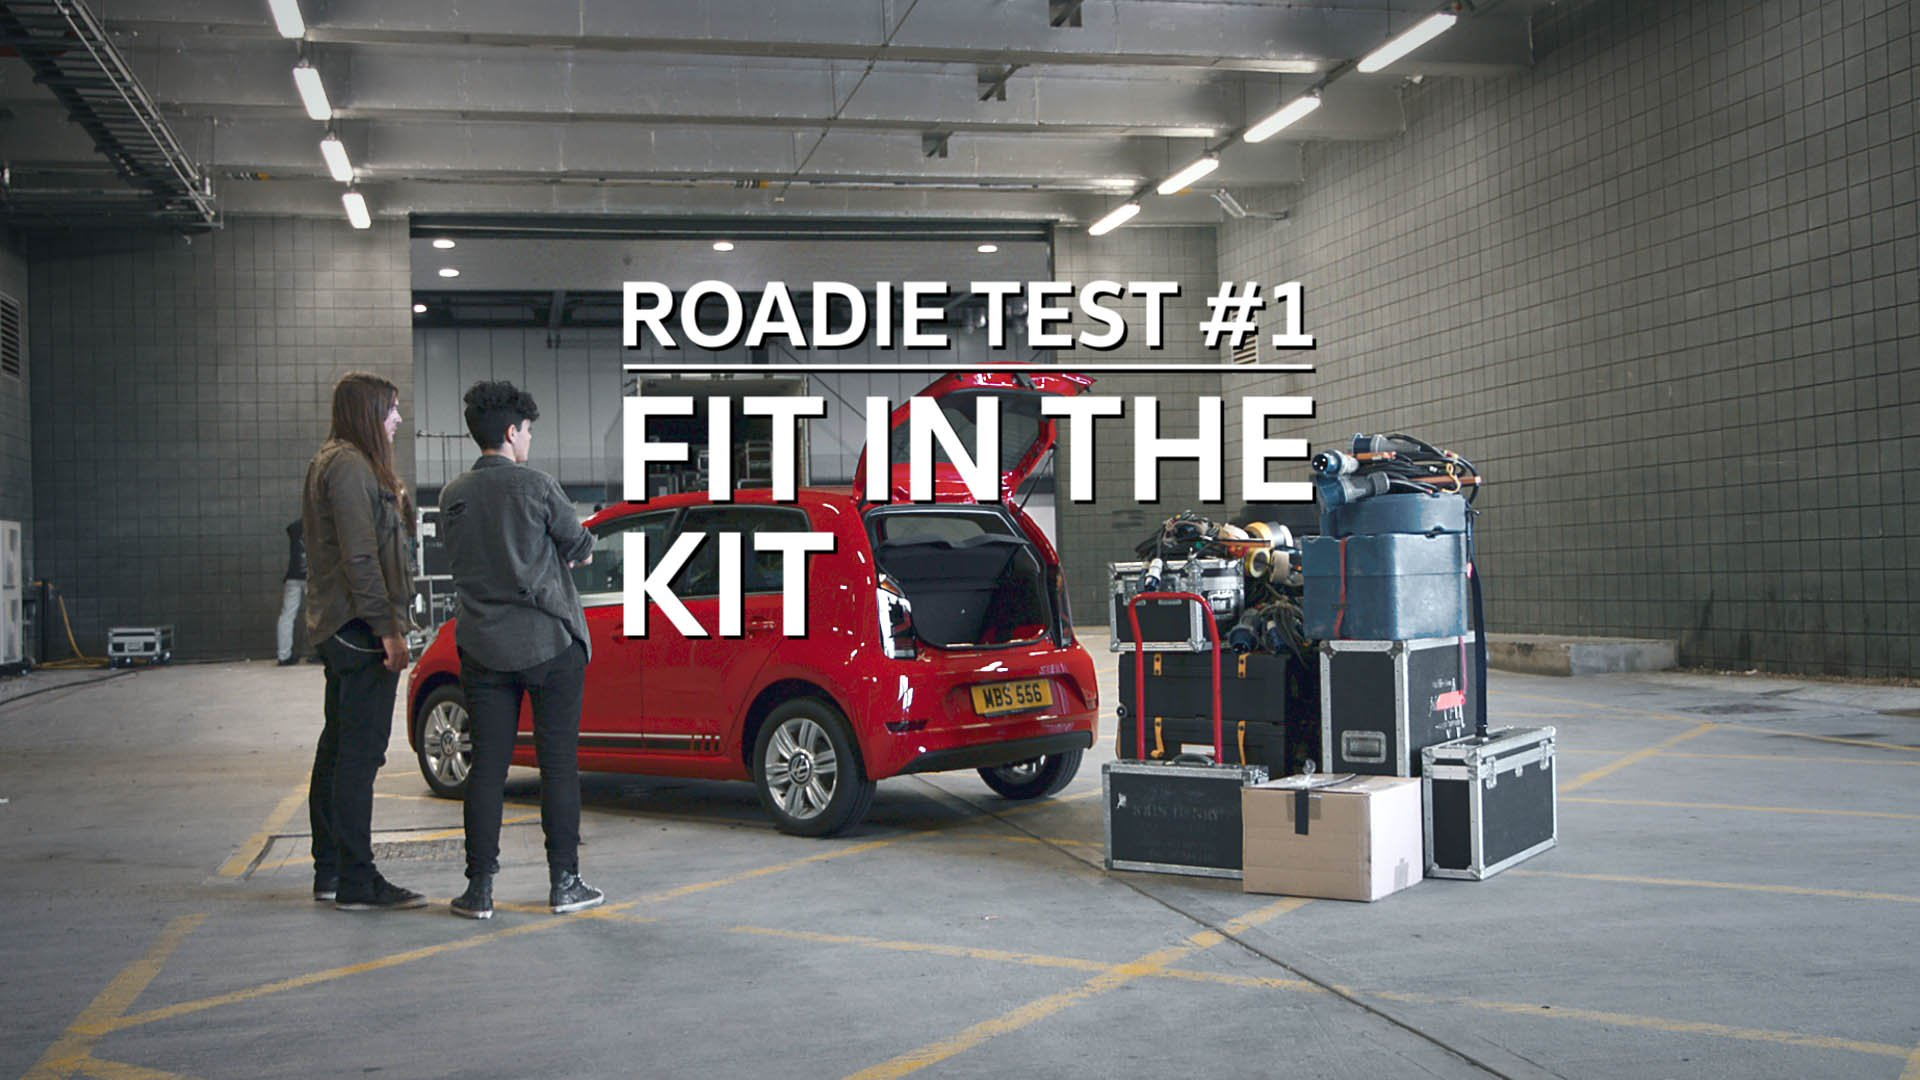 The Roadie Test